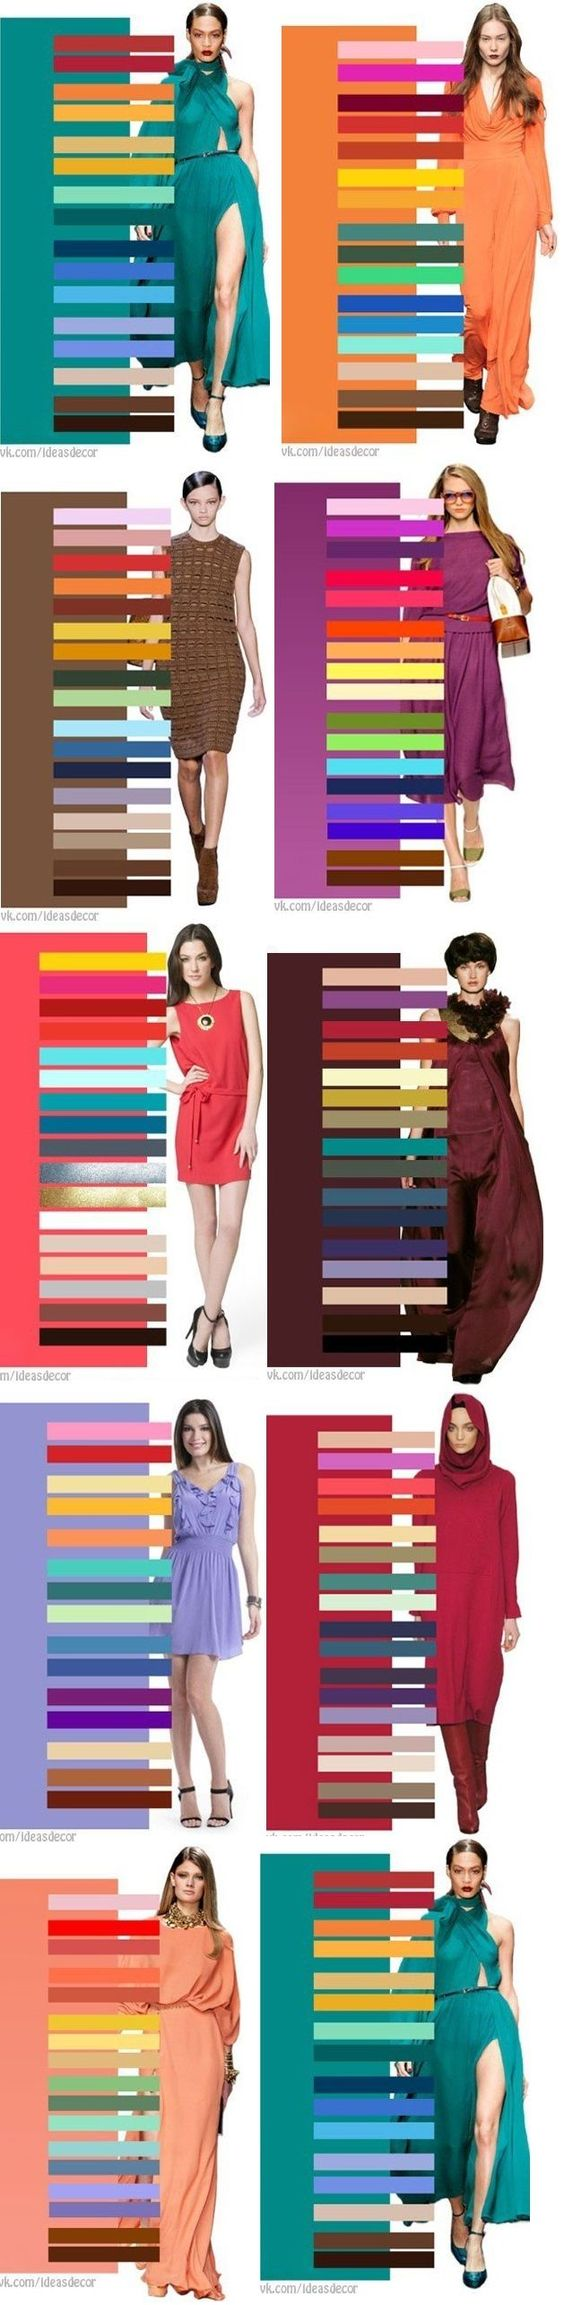 Great Color Combinations Cloths Inspiration And